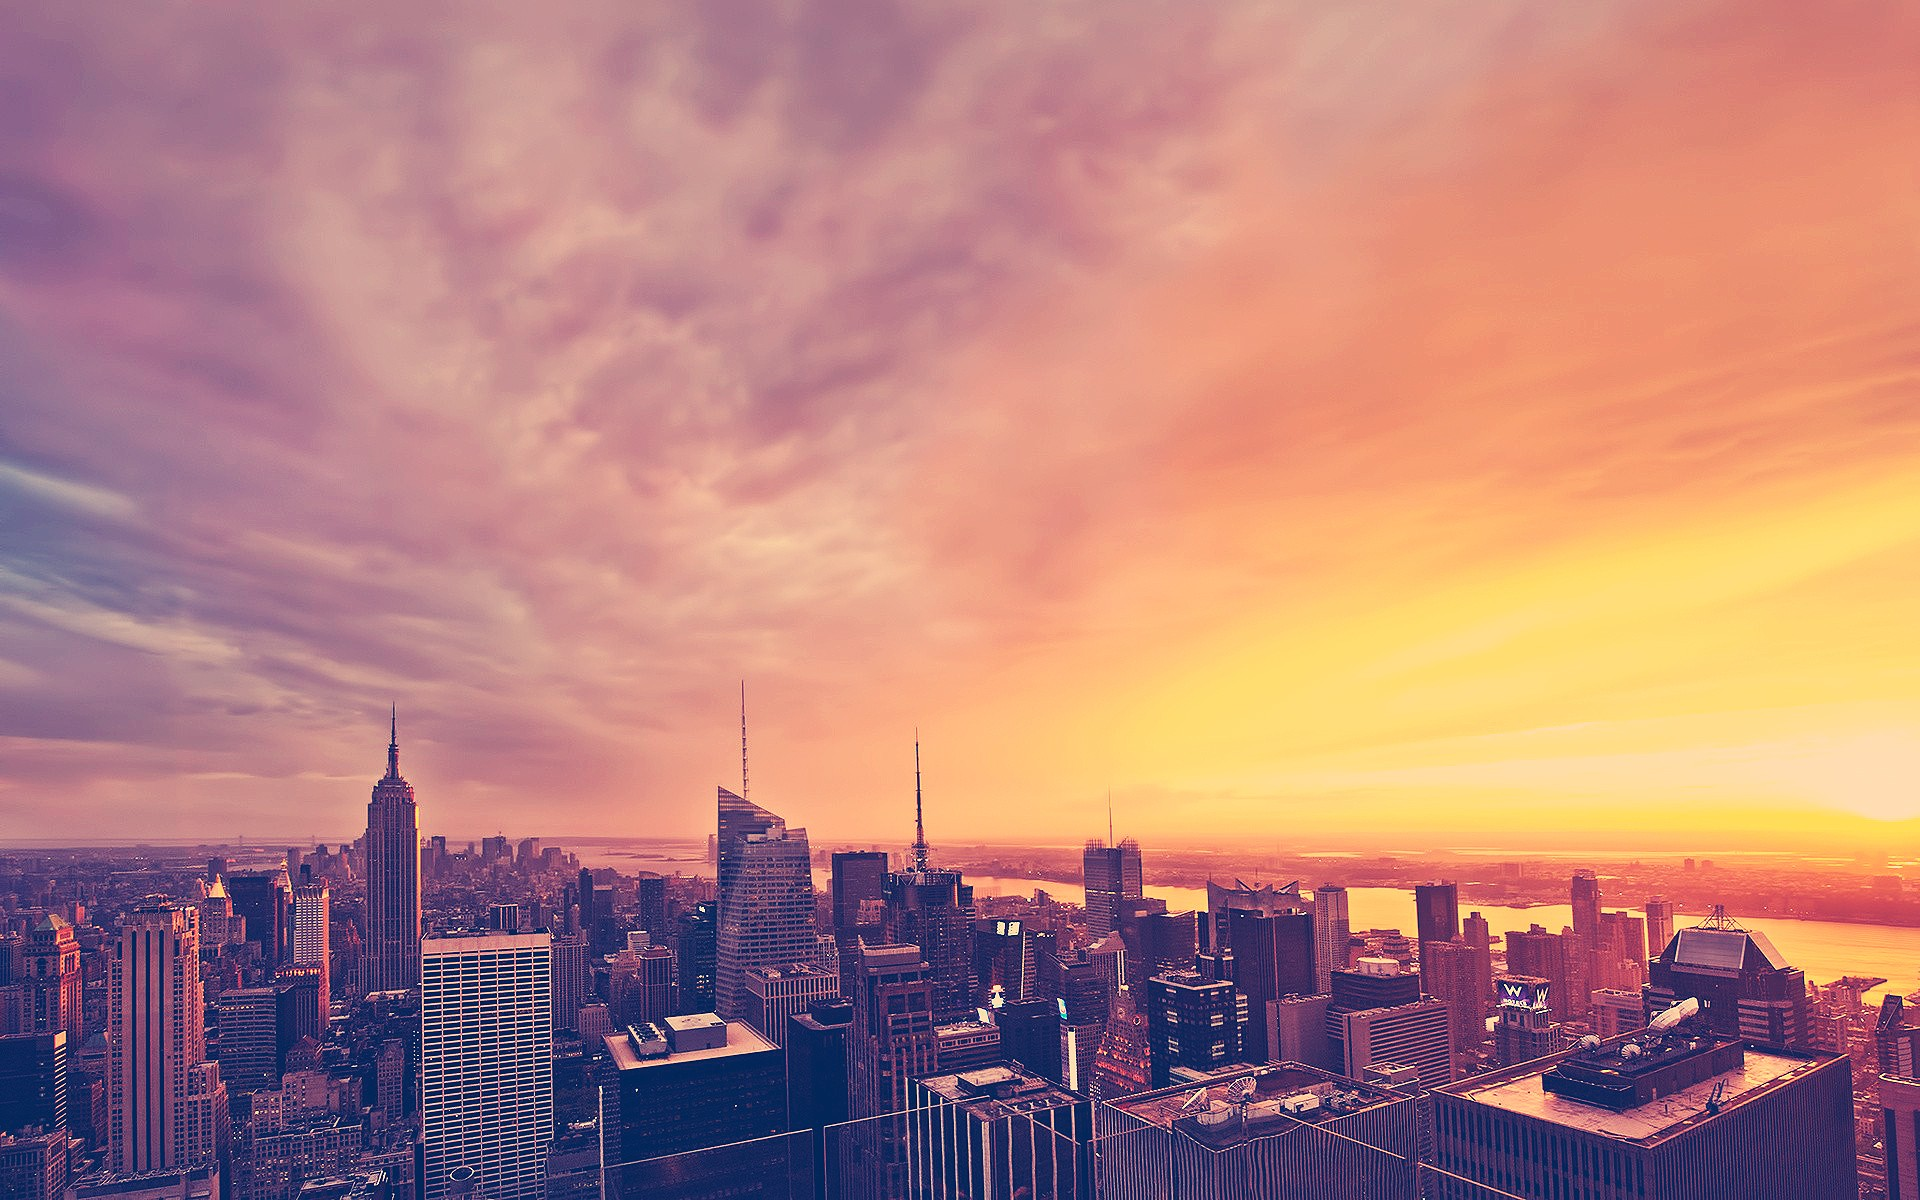 nyc Full HD Wallpaper and Background Image | 1920x1200 ...